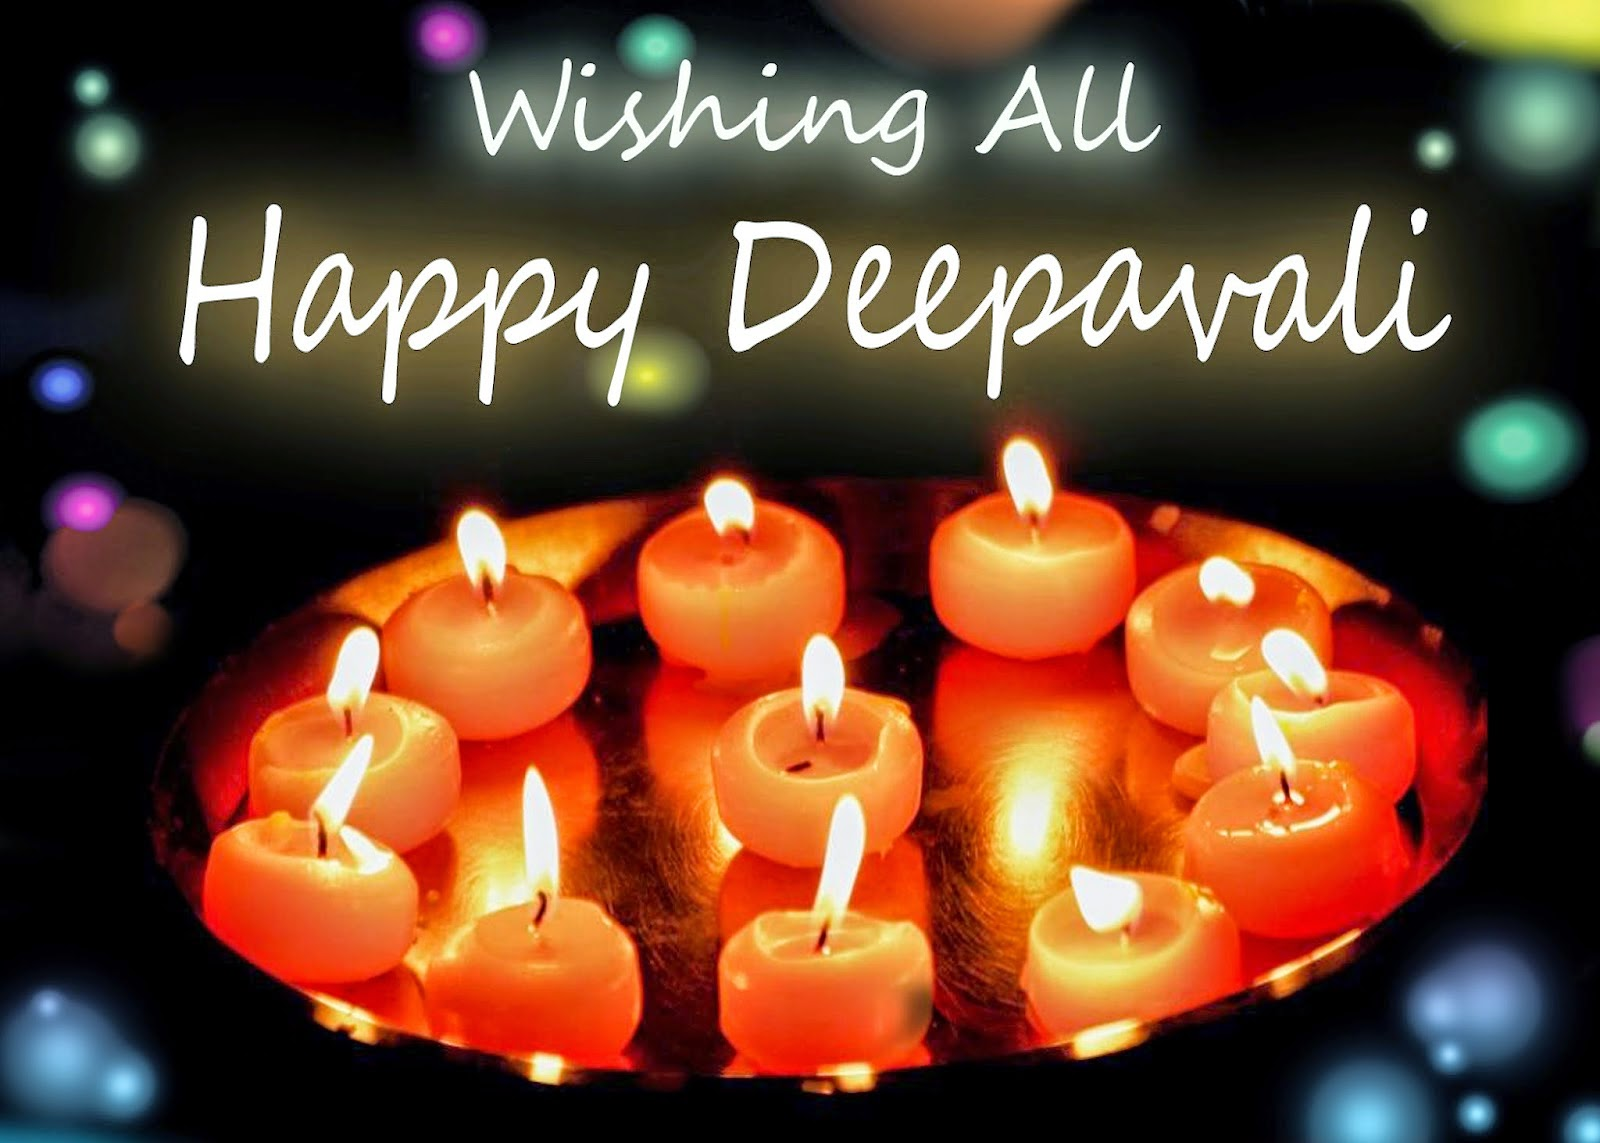 Happy diwali wishes sms happy deepavali 2015 imageswishesquotes happy deepavali 2015 images kristyandbryce Image collections